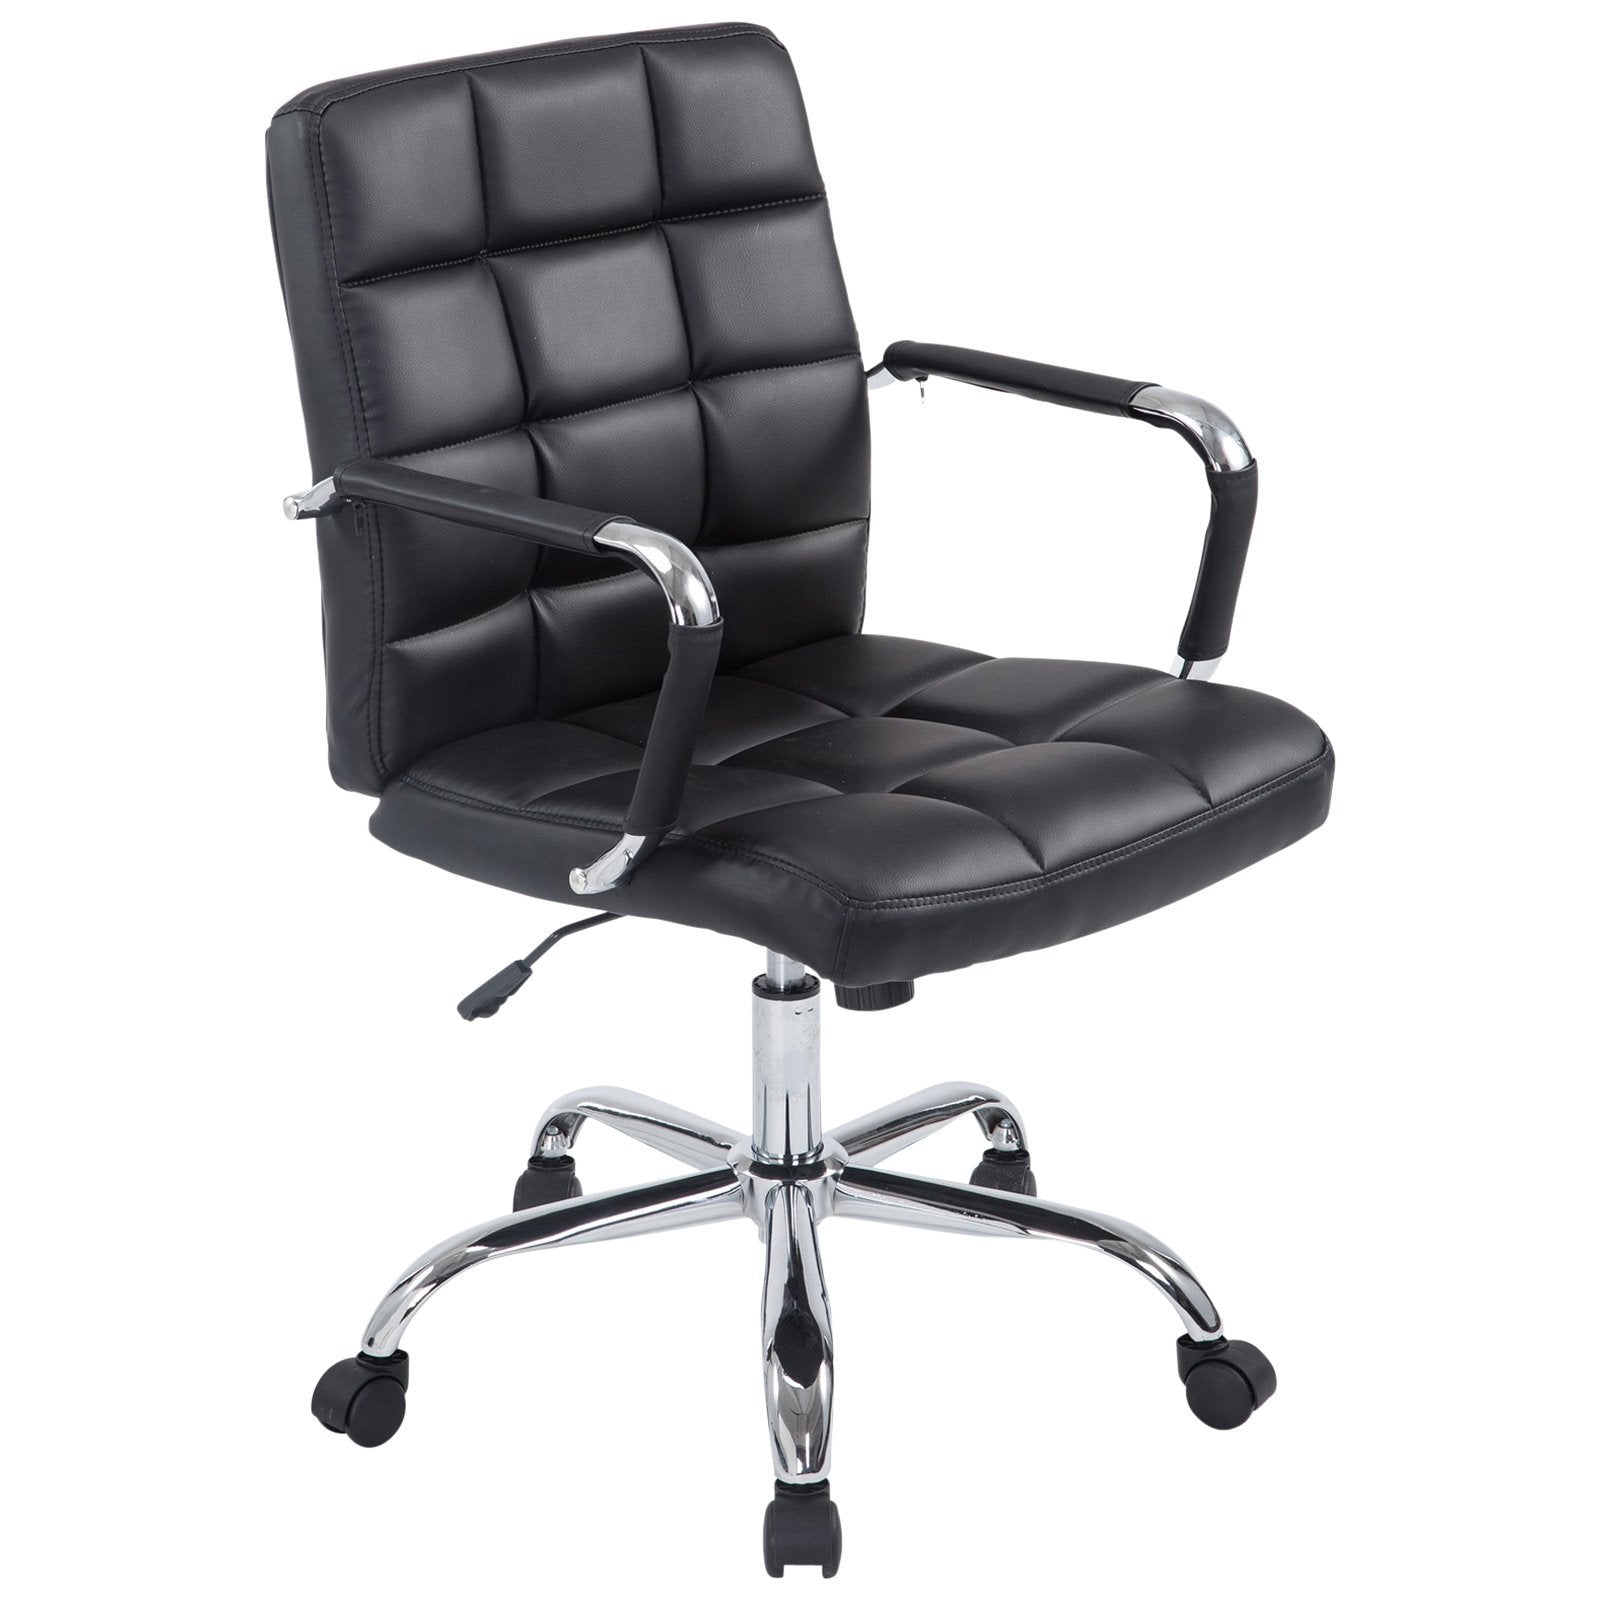 chairs shop chair contemporary black swivel office design with adelaide ca en dining wheels and from modern boconcept metal function